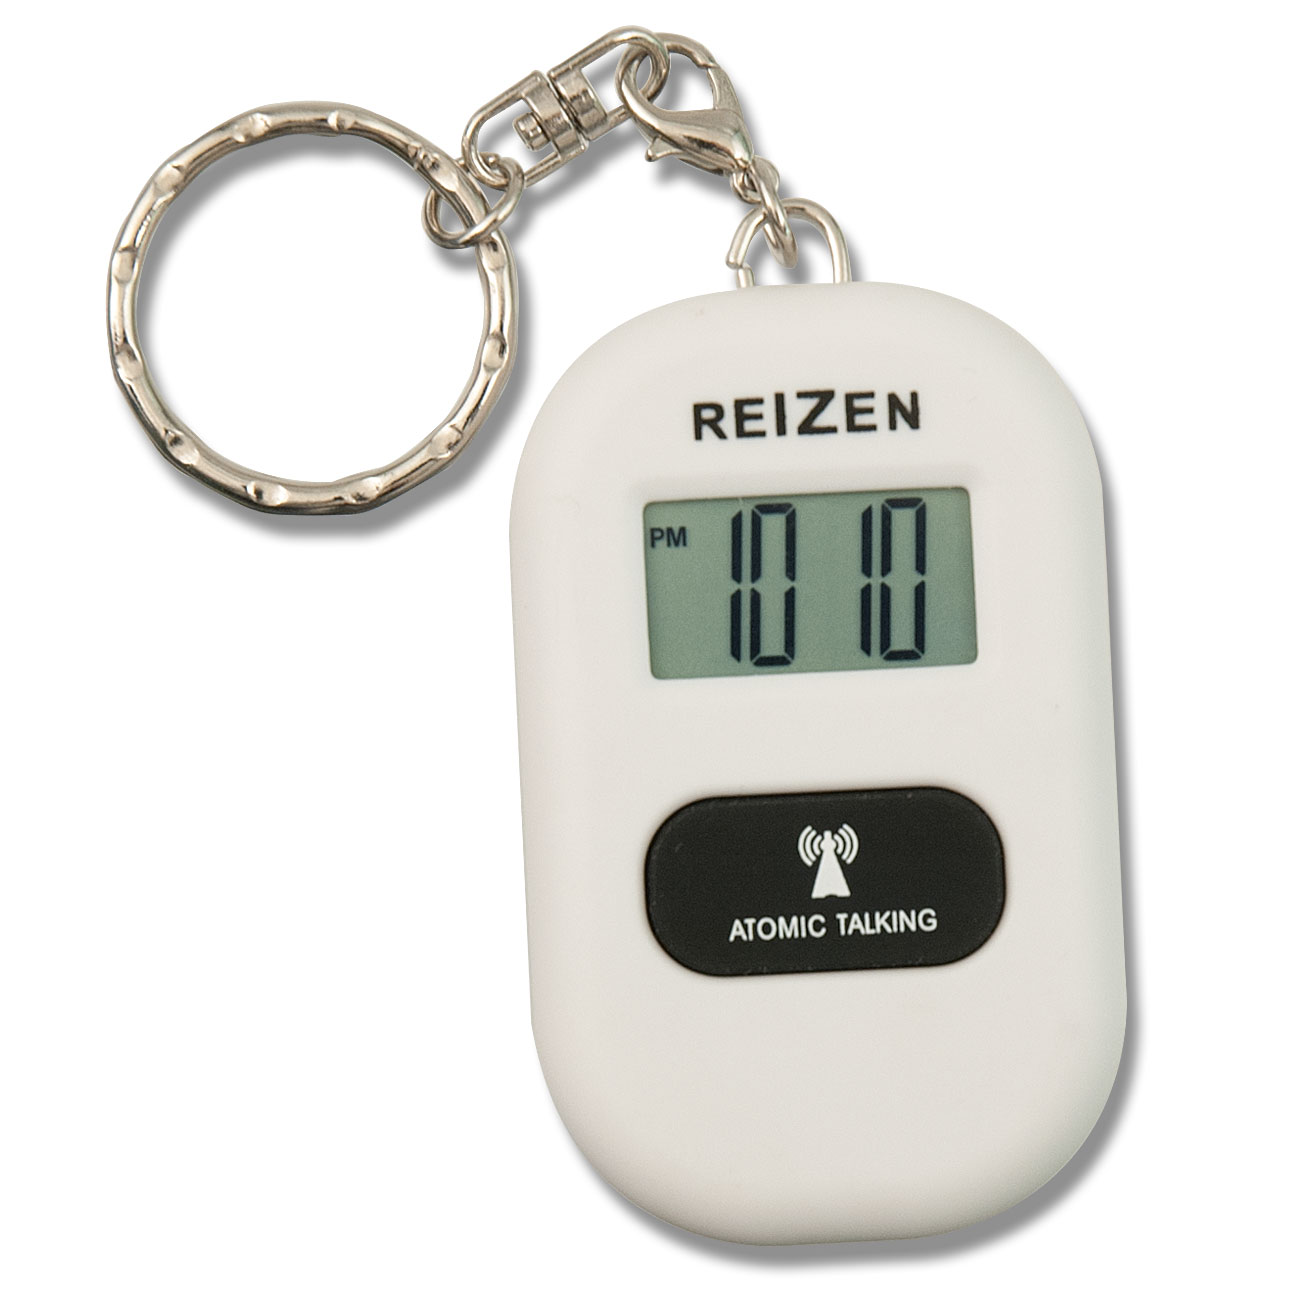 Reizen Talking Atomic Watch Keychain- White